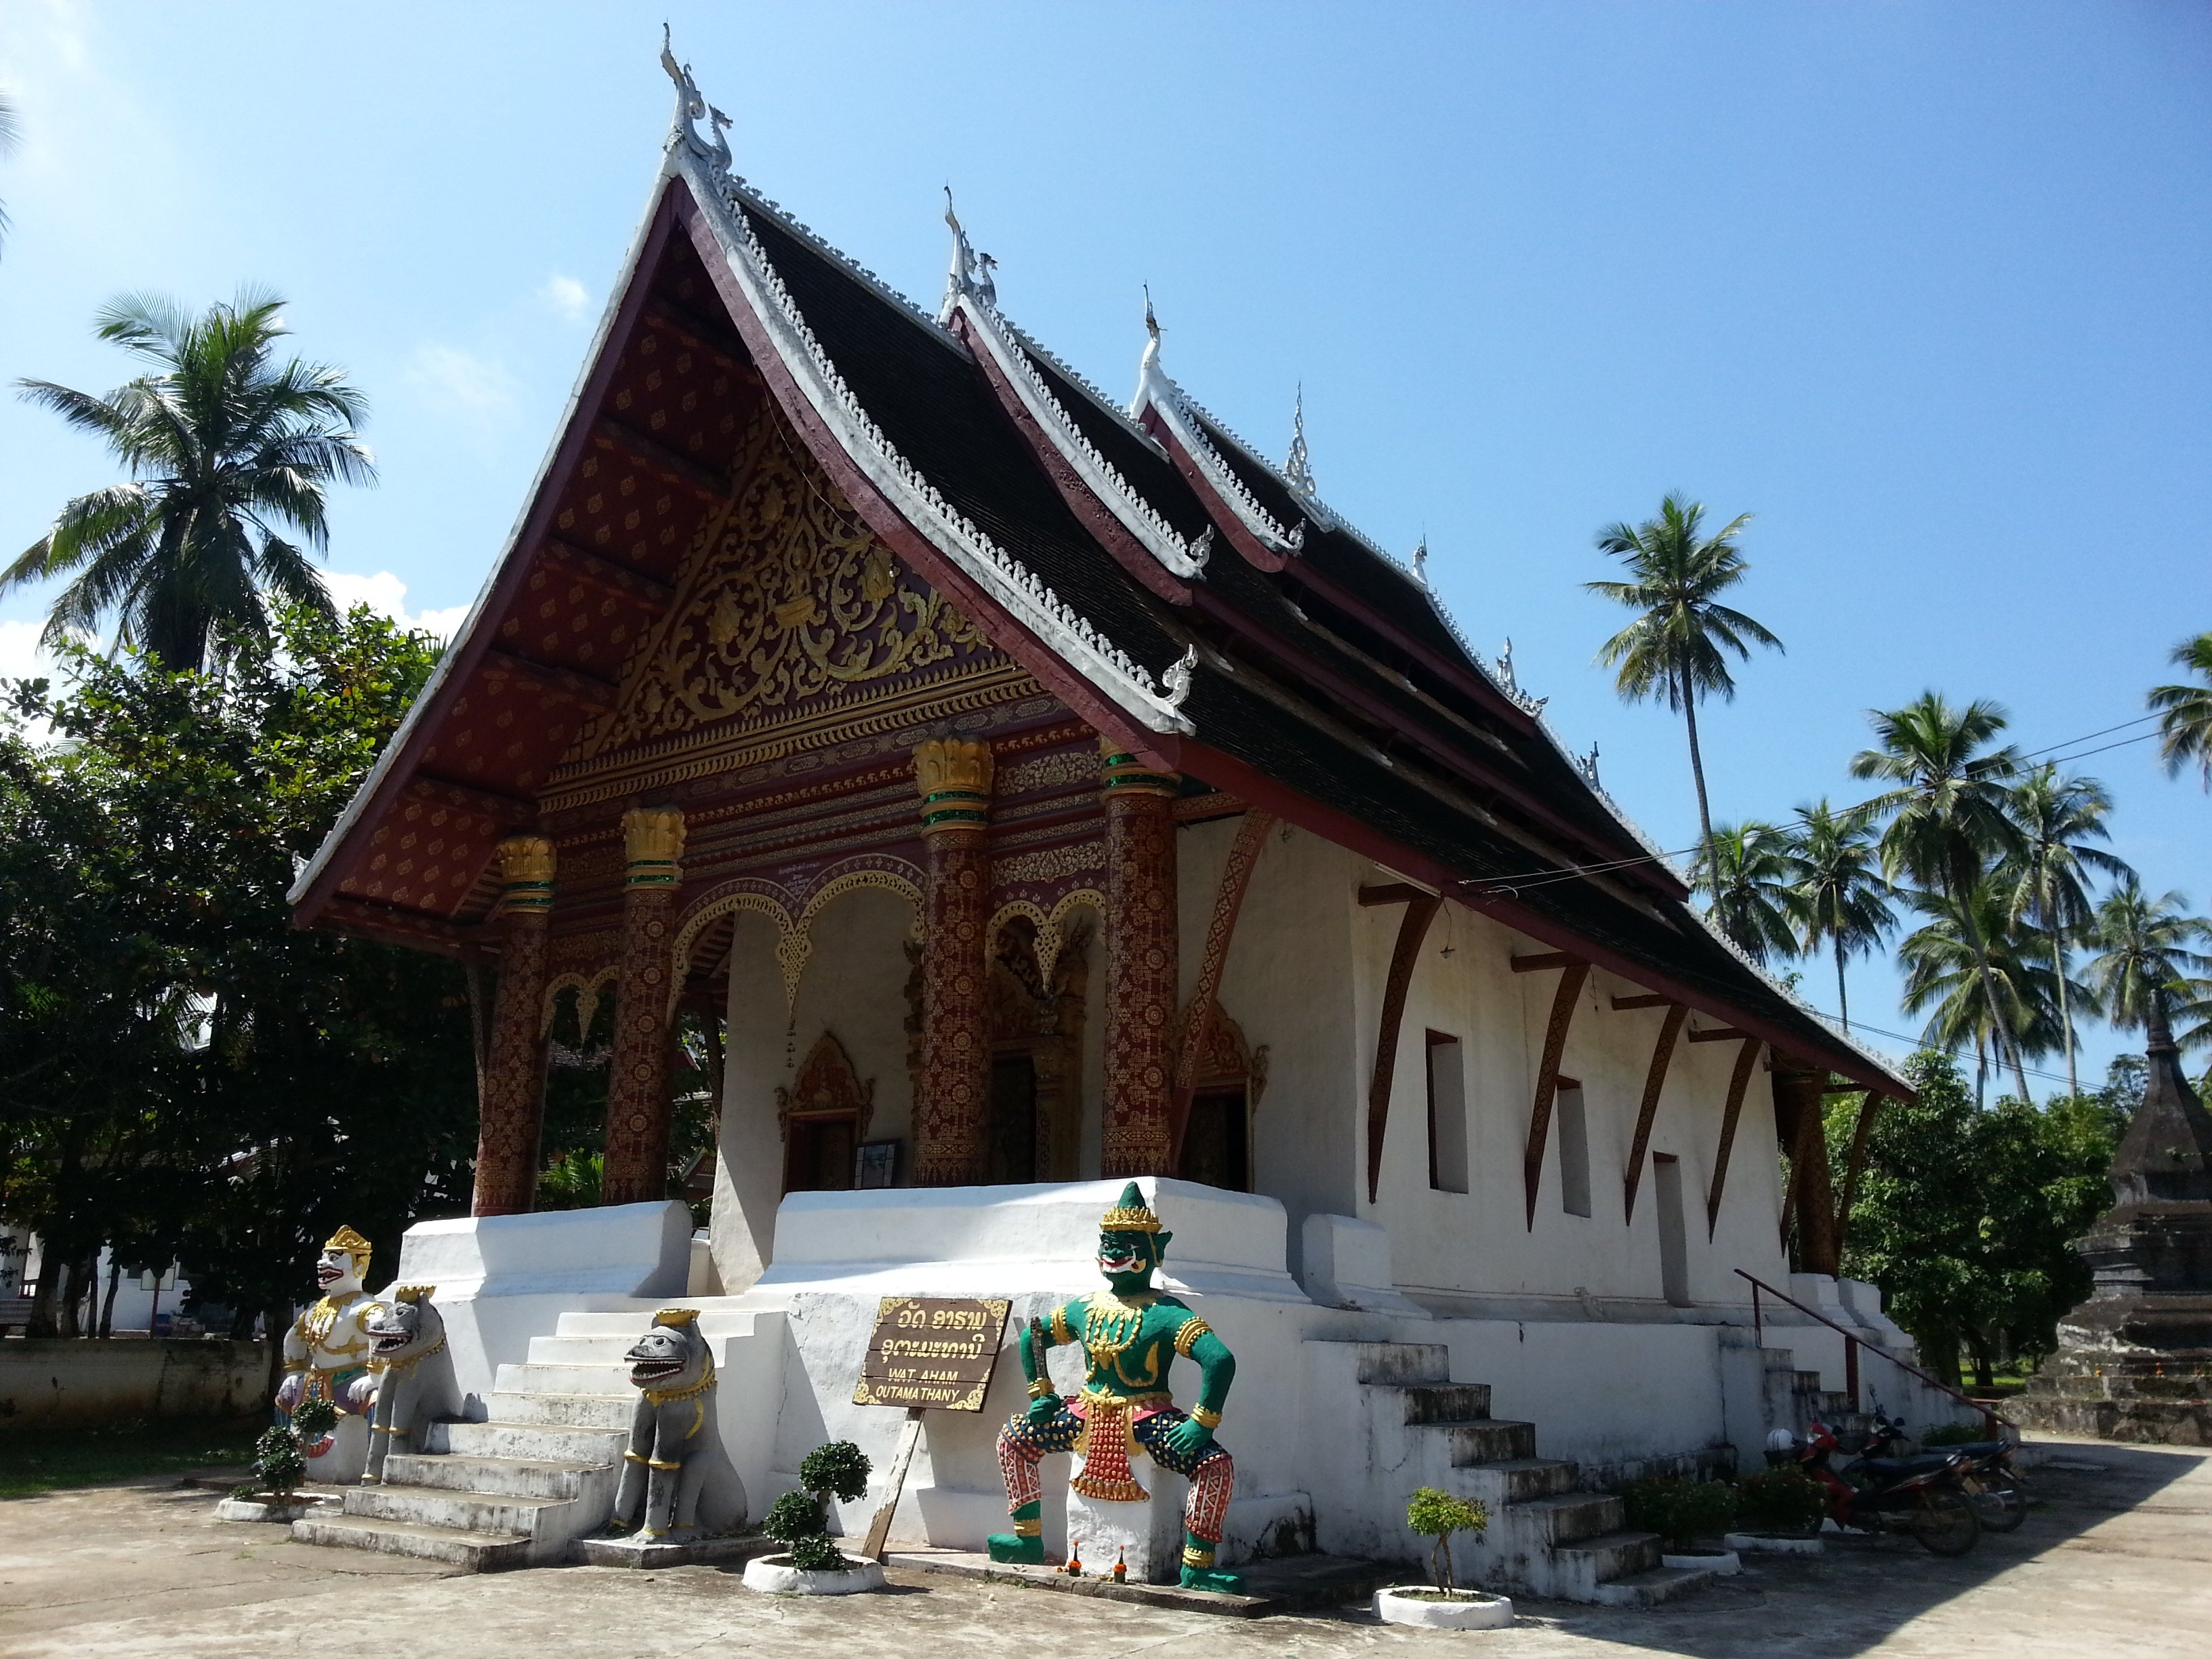 Ordination hall at Wat Aham